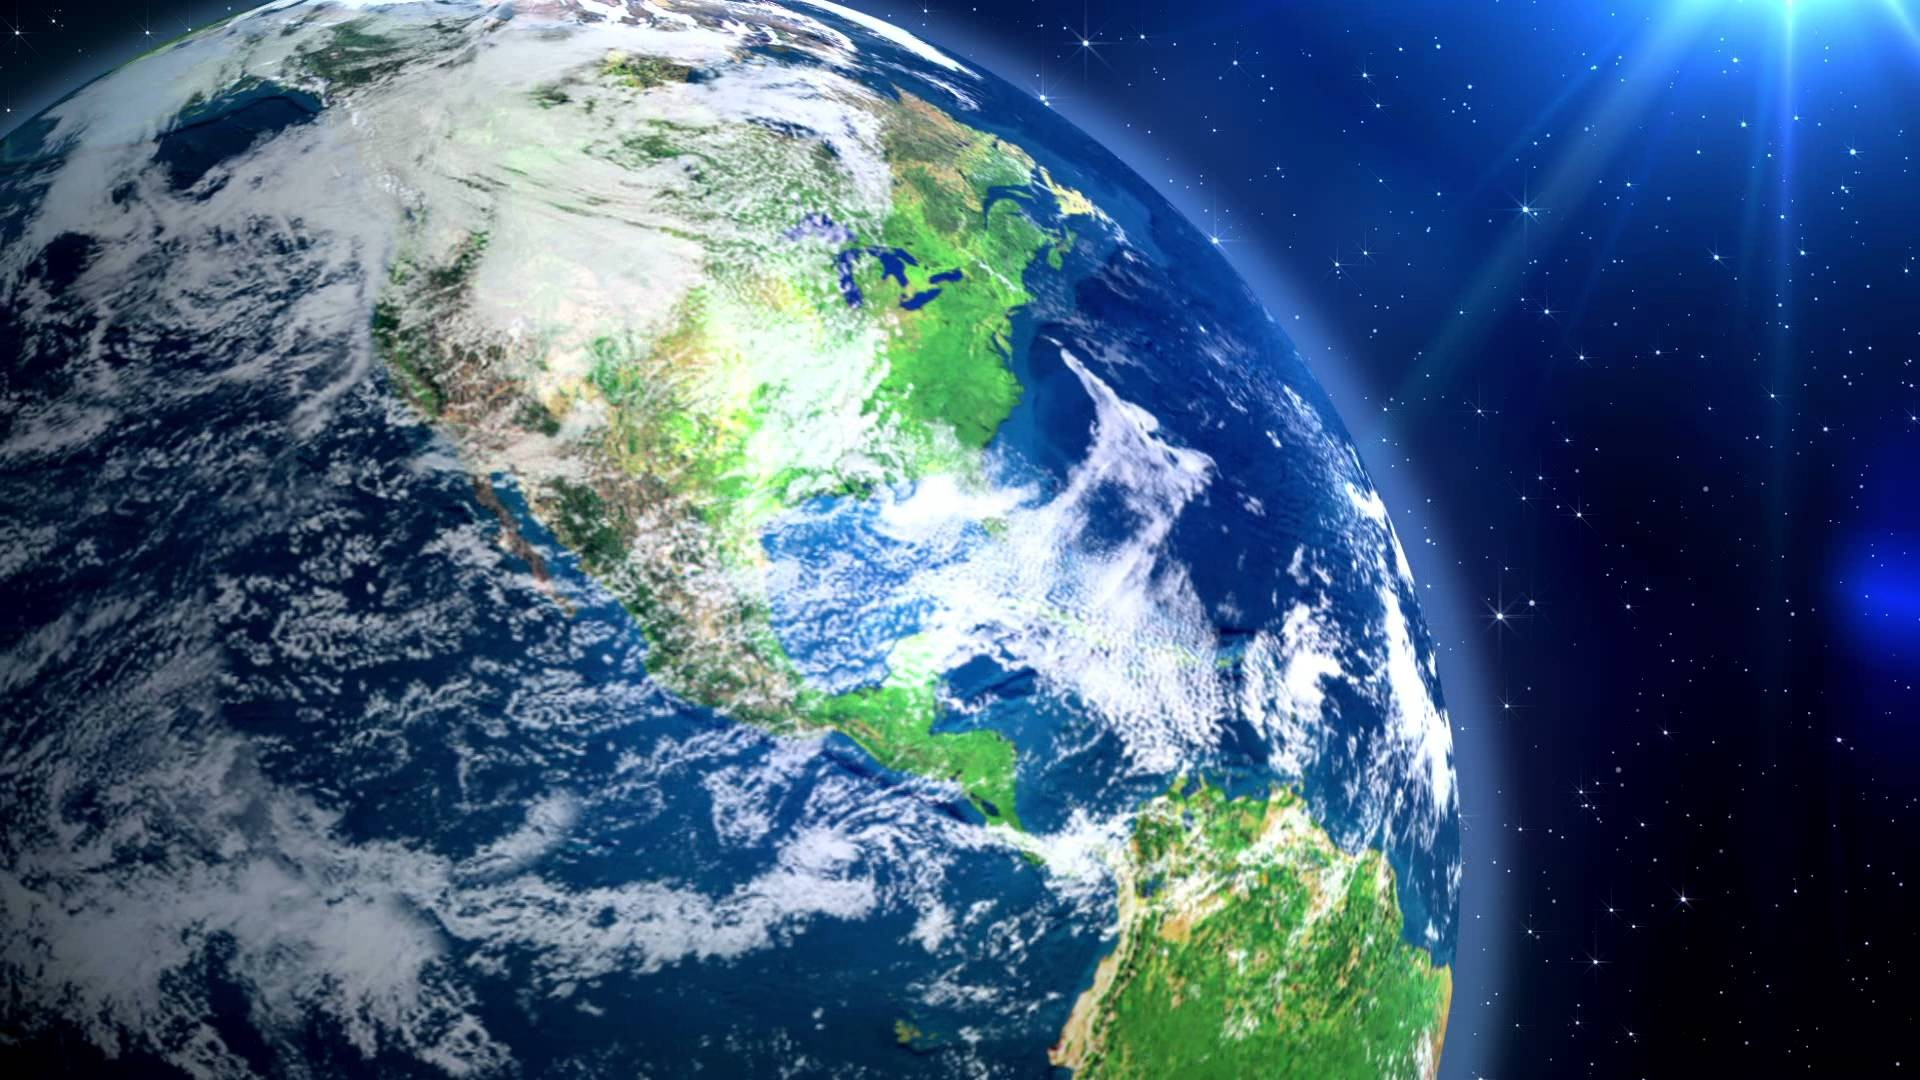 Earth Wallpaper Full Hd: Earth Background ·① Download Free Cool HD Backgrounds For